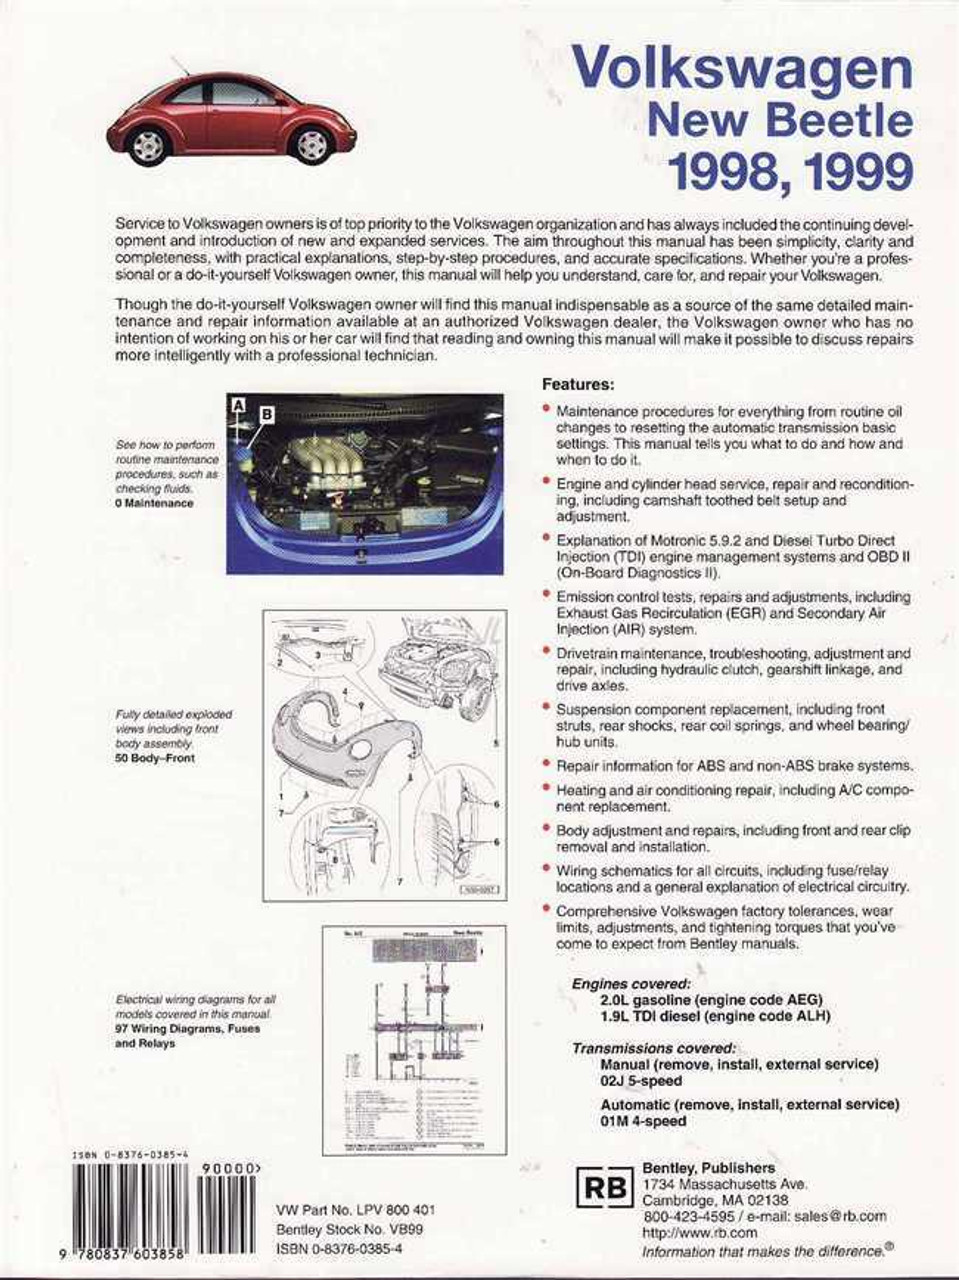 Volkswagen New Beetle 1998 - 1999 Workshop Manual